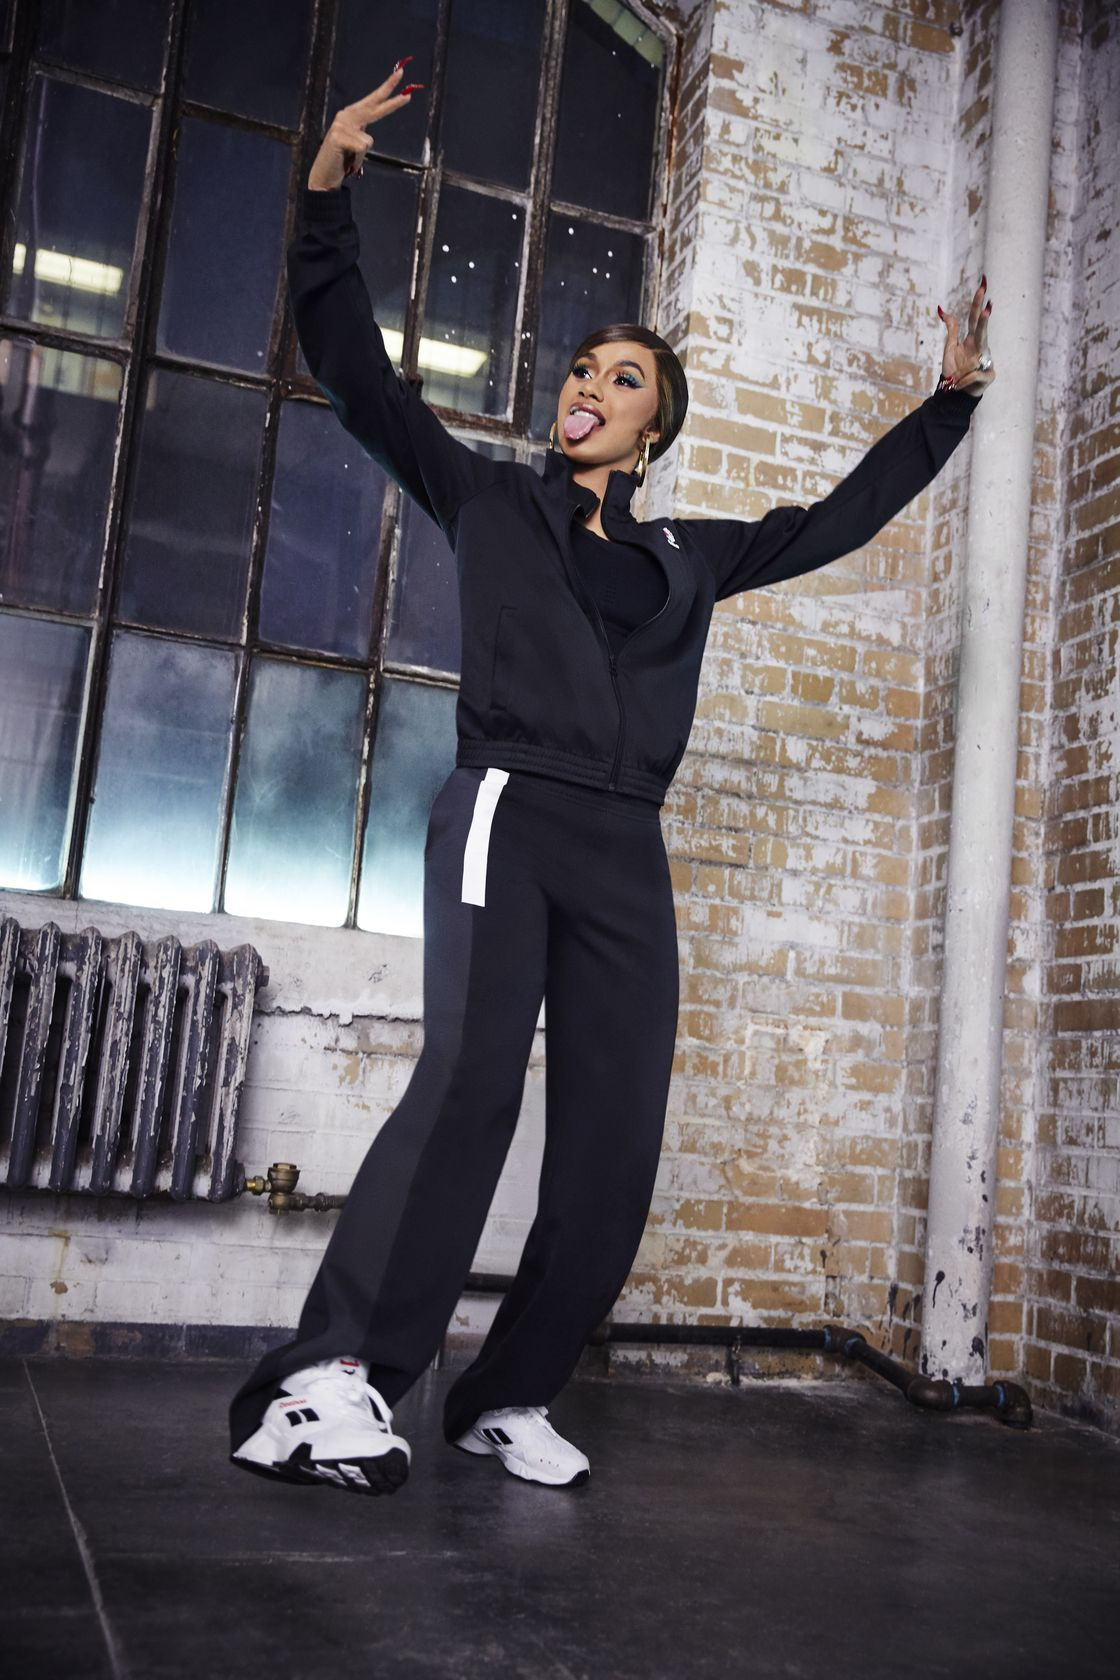 b39c2af2b7a7 Cardi B Has Officially Joined the Reebok Family - Cardi B and Reebok ...